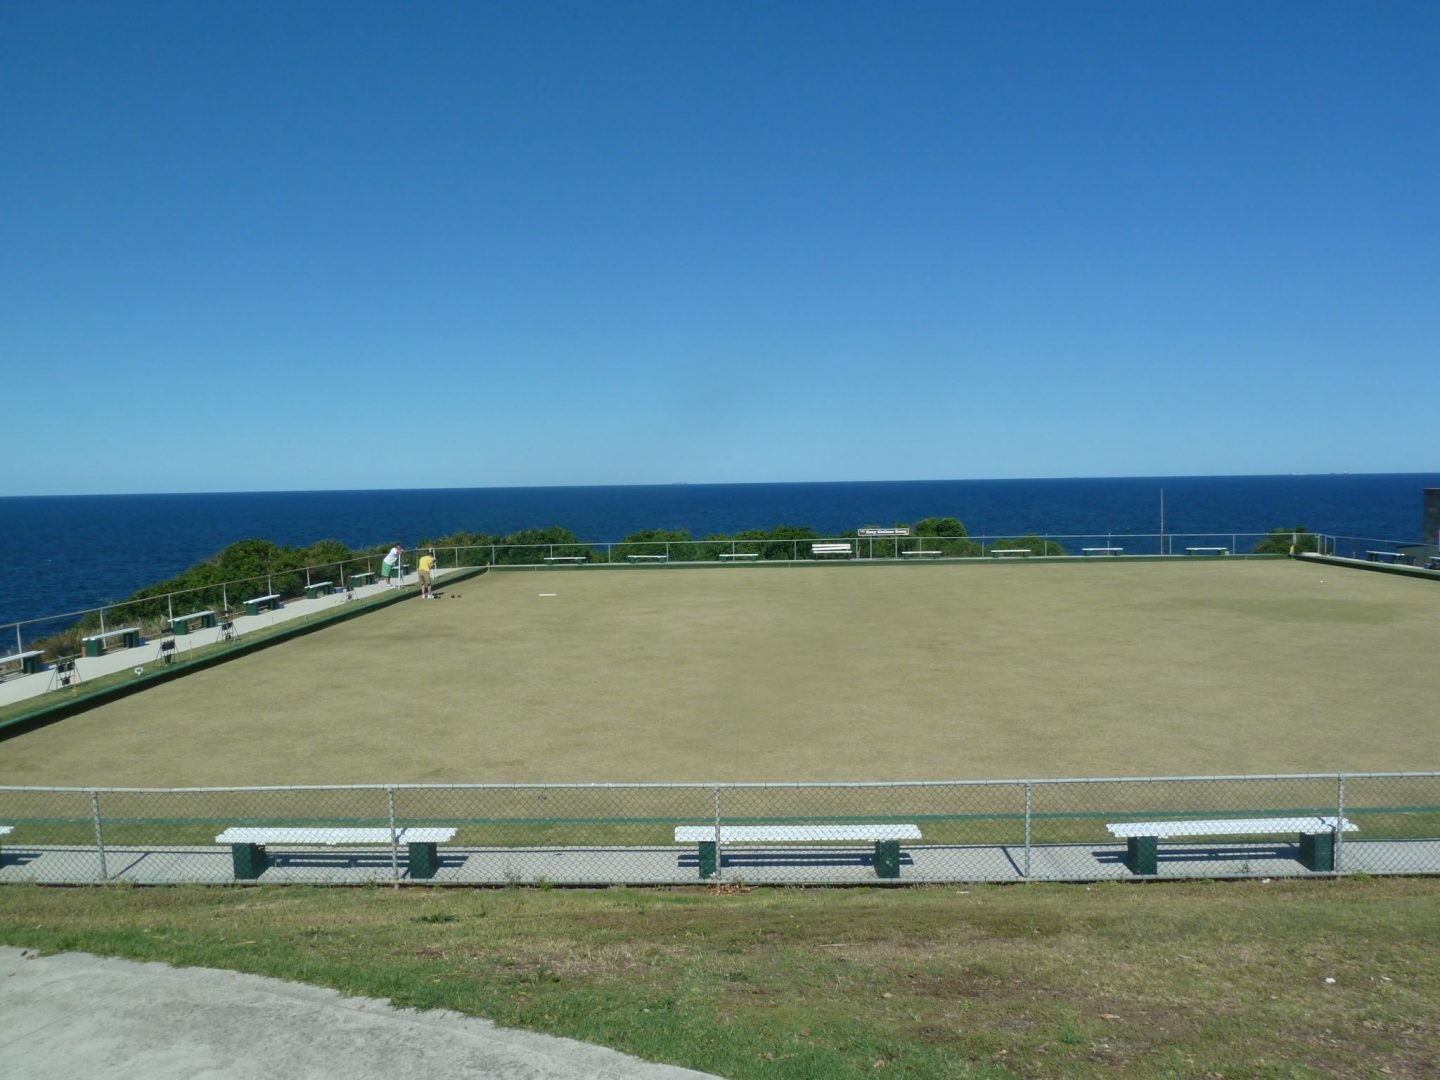 Looking over the bowling green at the Clovelly Lawn Bowls Club